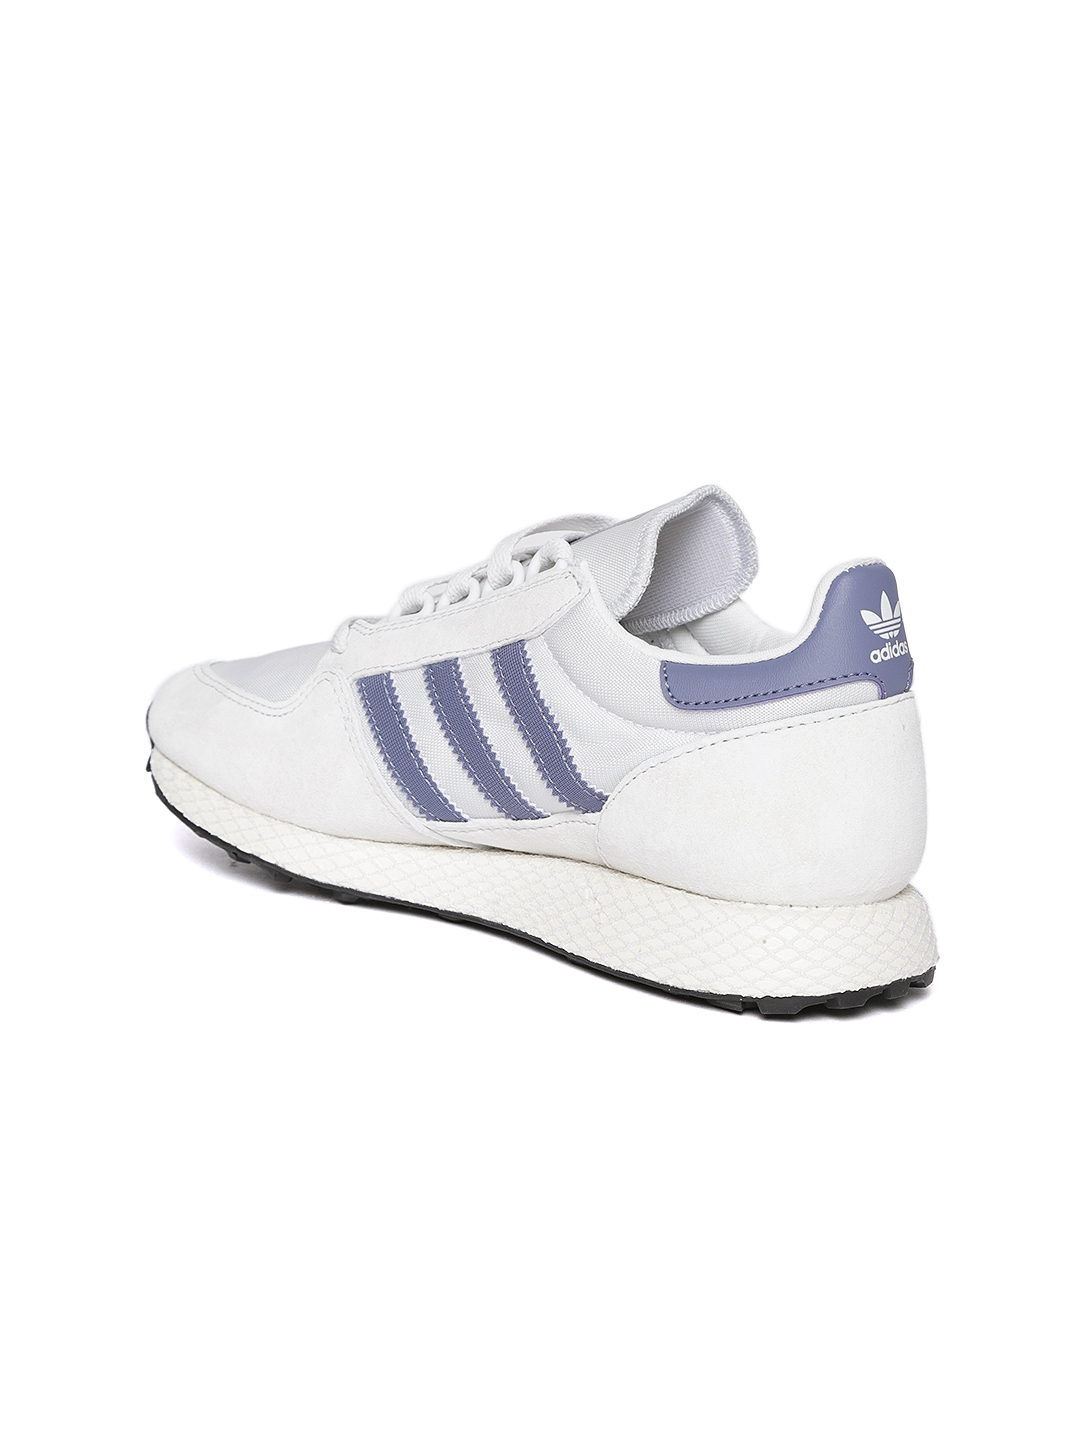 487d7d295be6 Buy ADIDAS Originals Women Off White Forest Grove Suede Sneakers ...